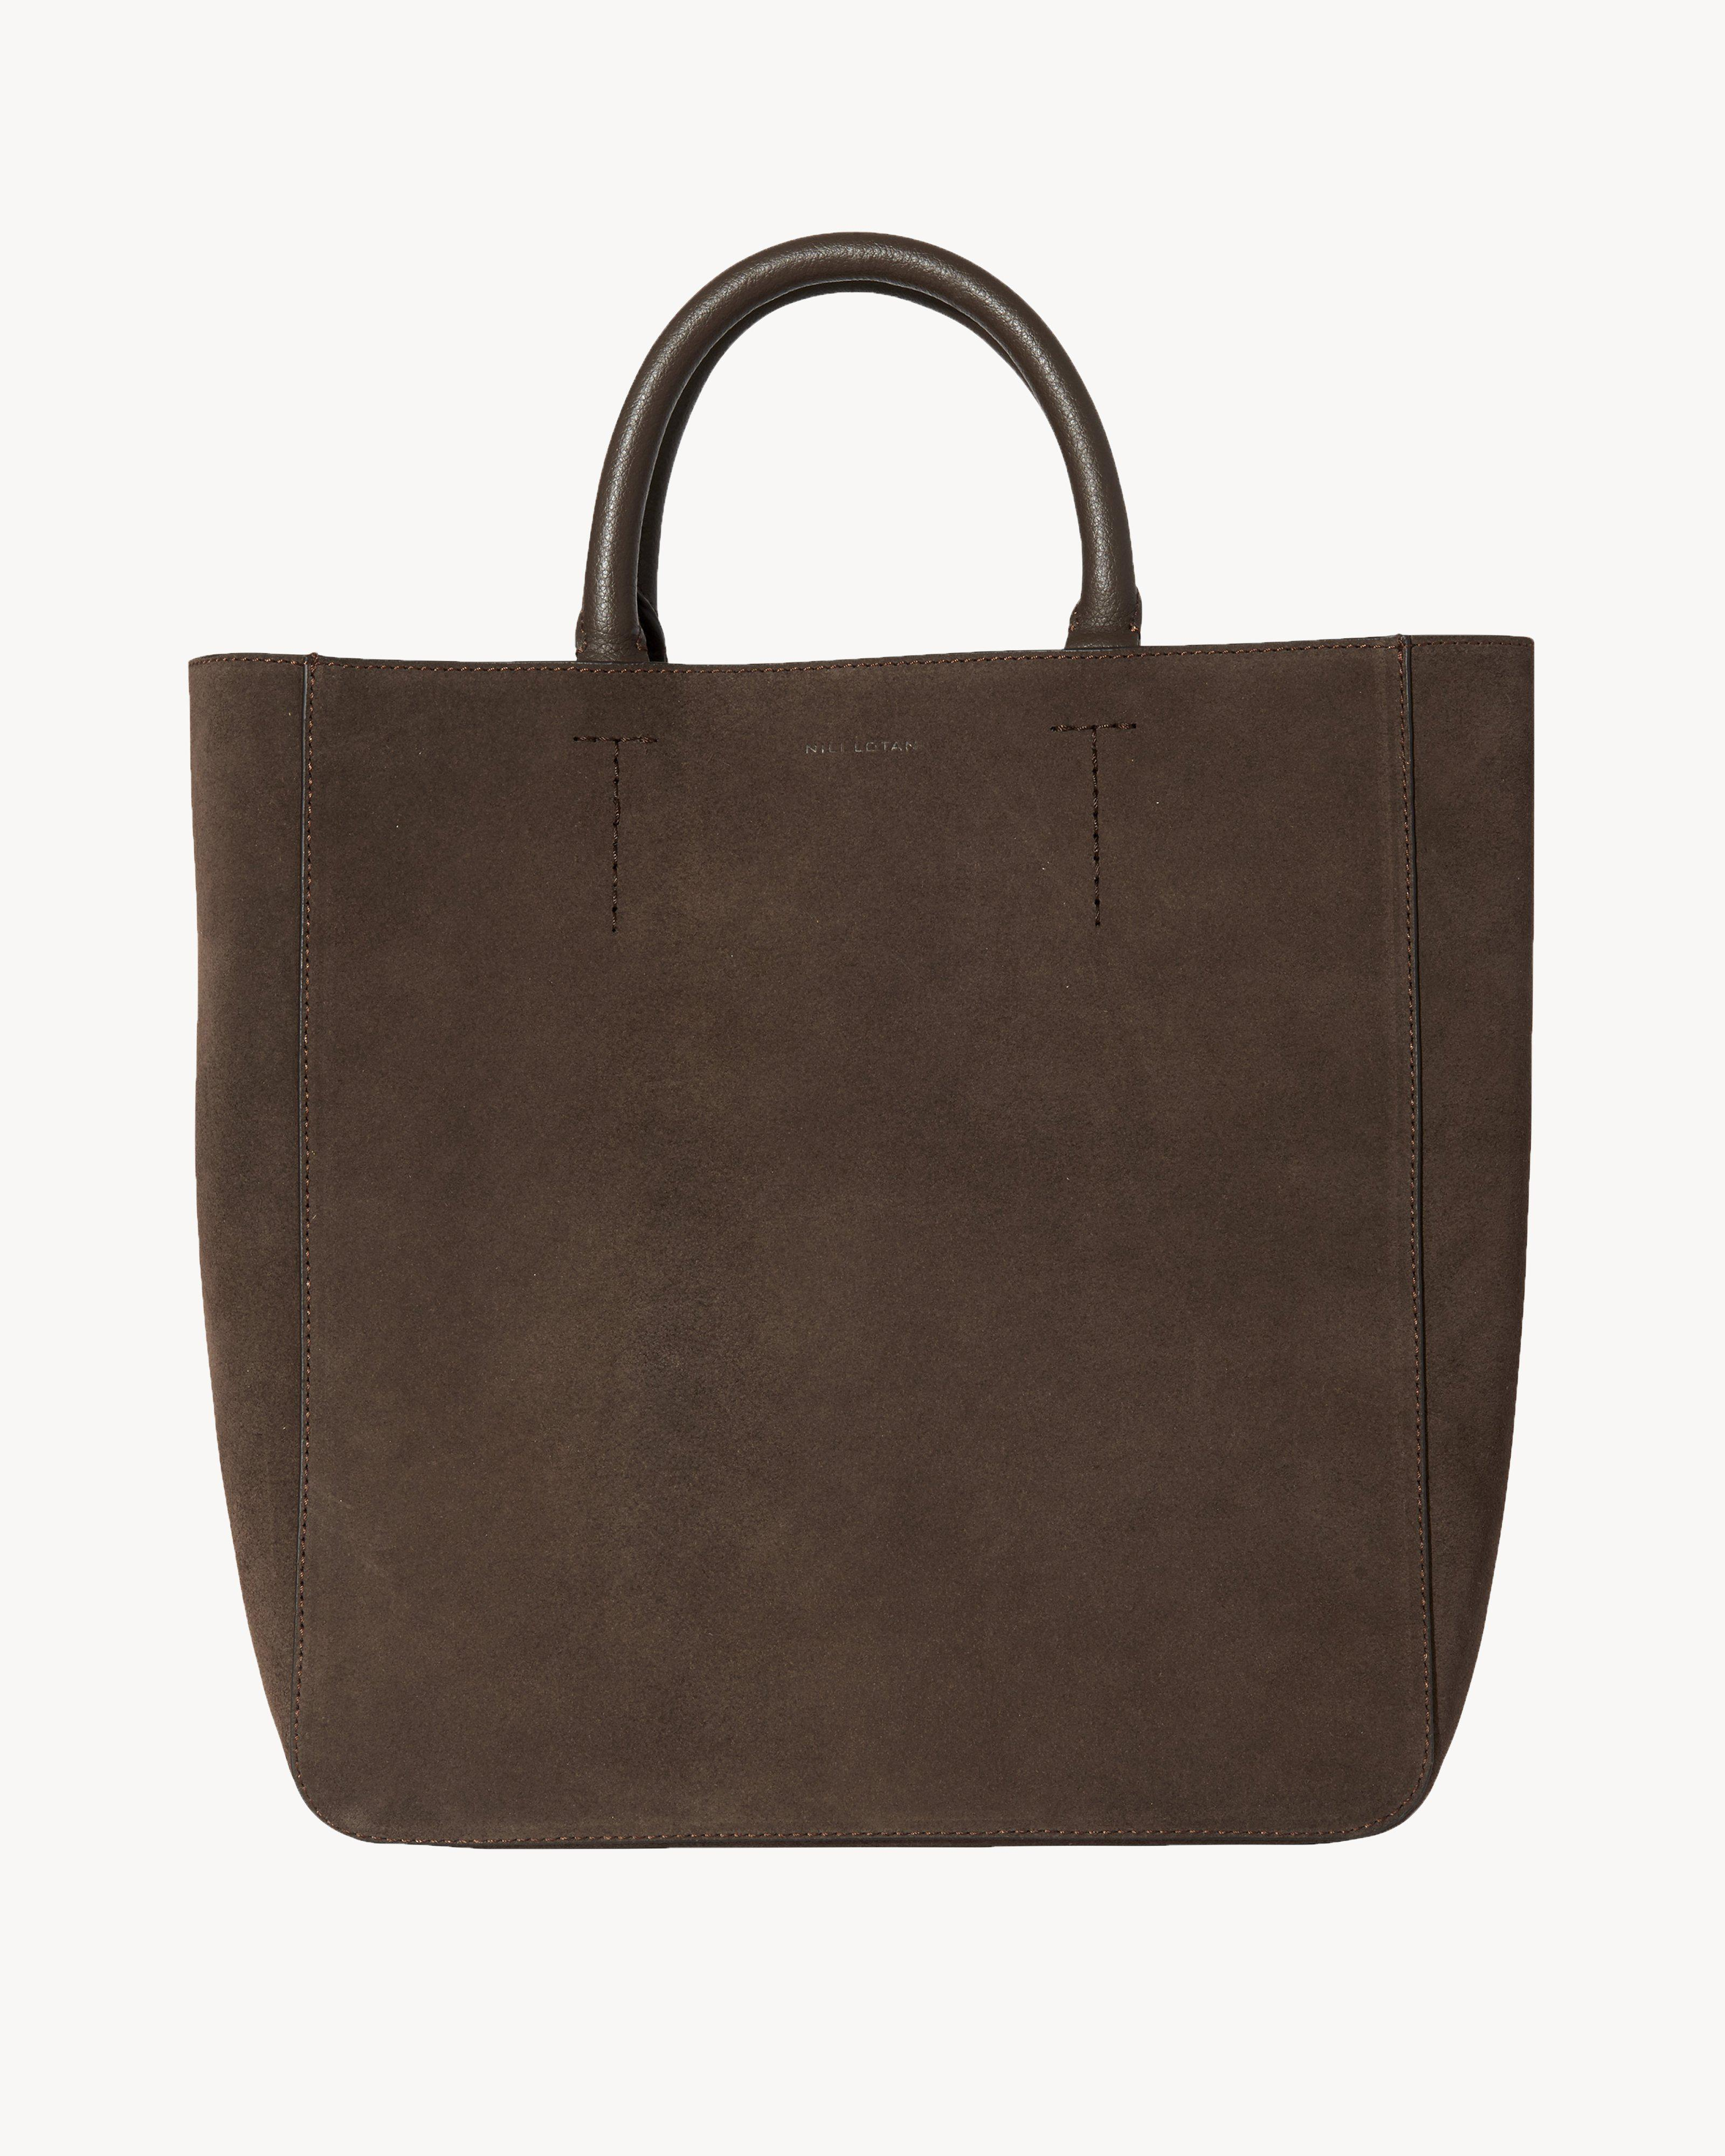 THE NL TOTE